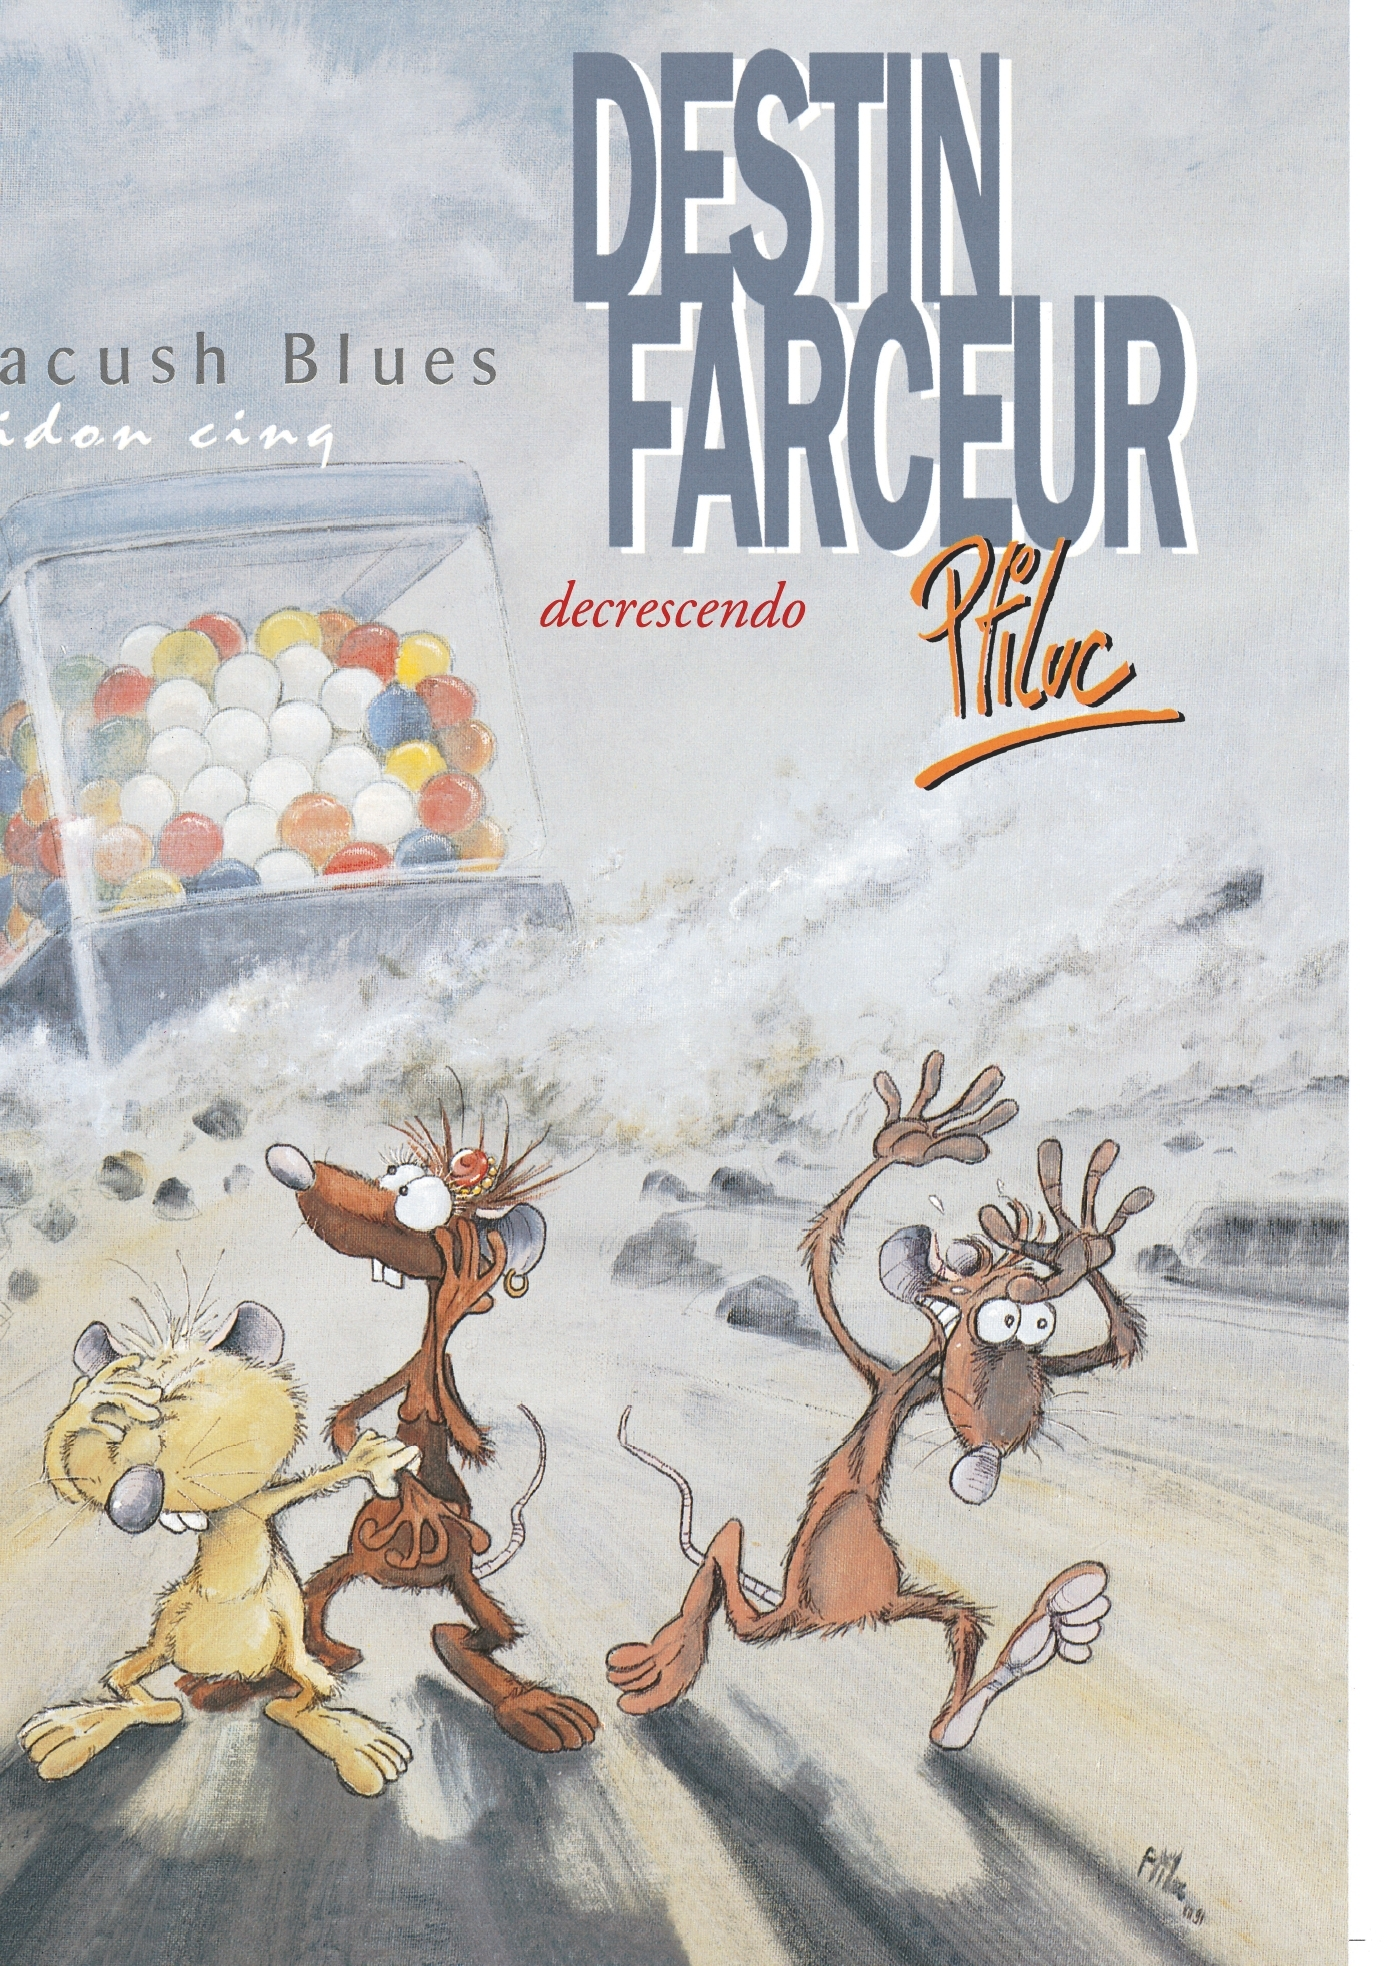 PACUSH BLUES - TOME 05